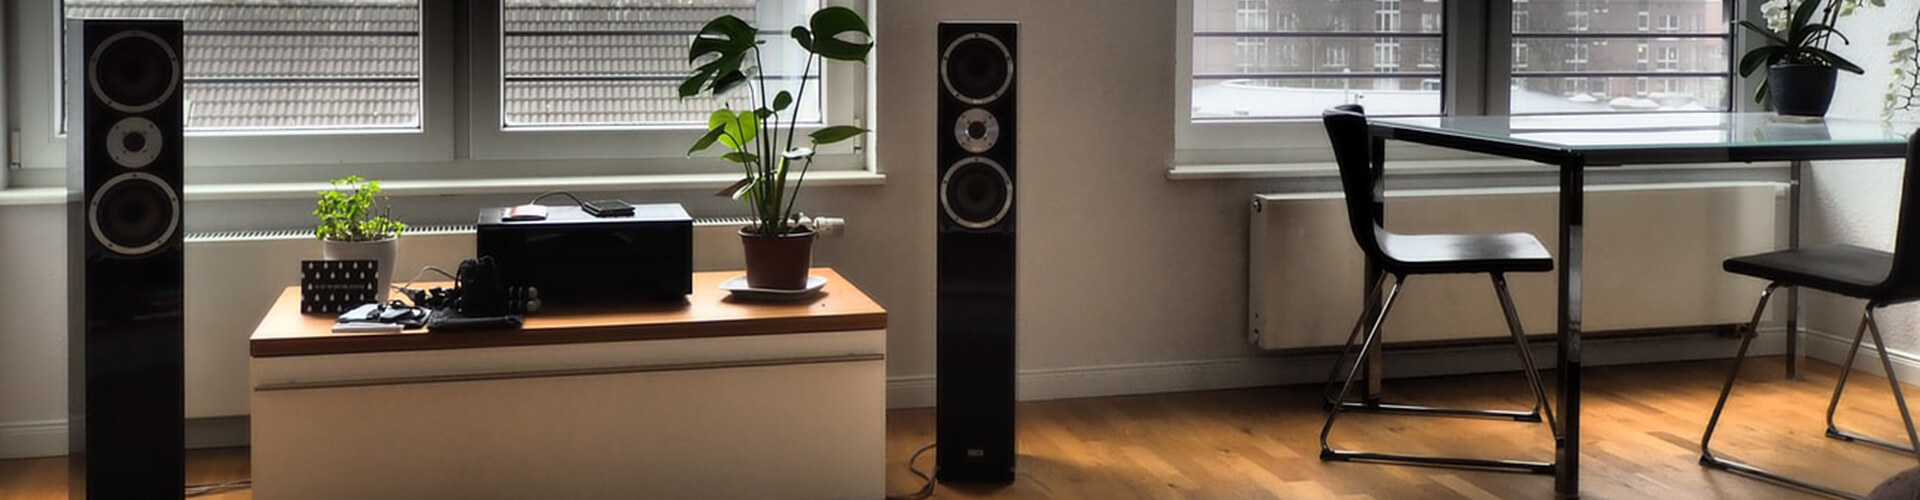 Diy home audio system guide